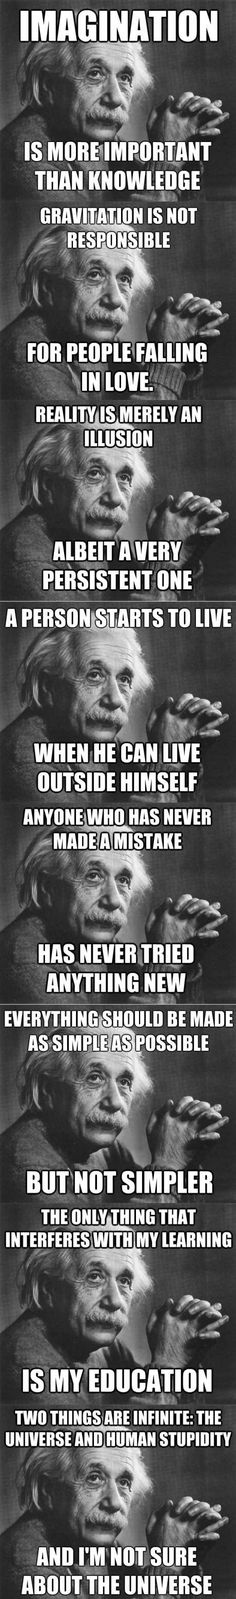 Einstein is a bad-ass quote machine.....Had to post this for my son, Blaine, and the conversation we just had about stupidity!! Love you, son!